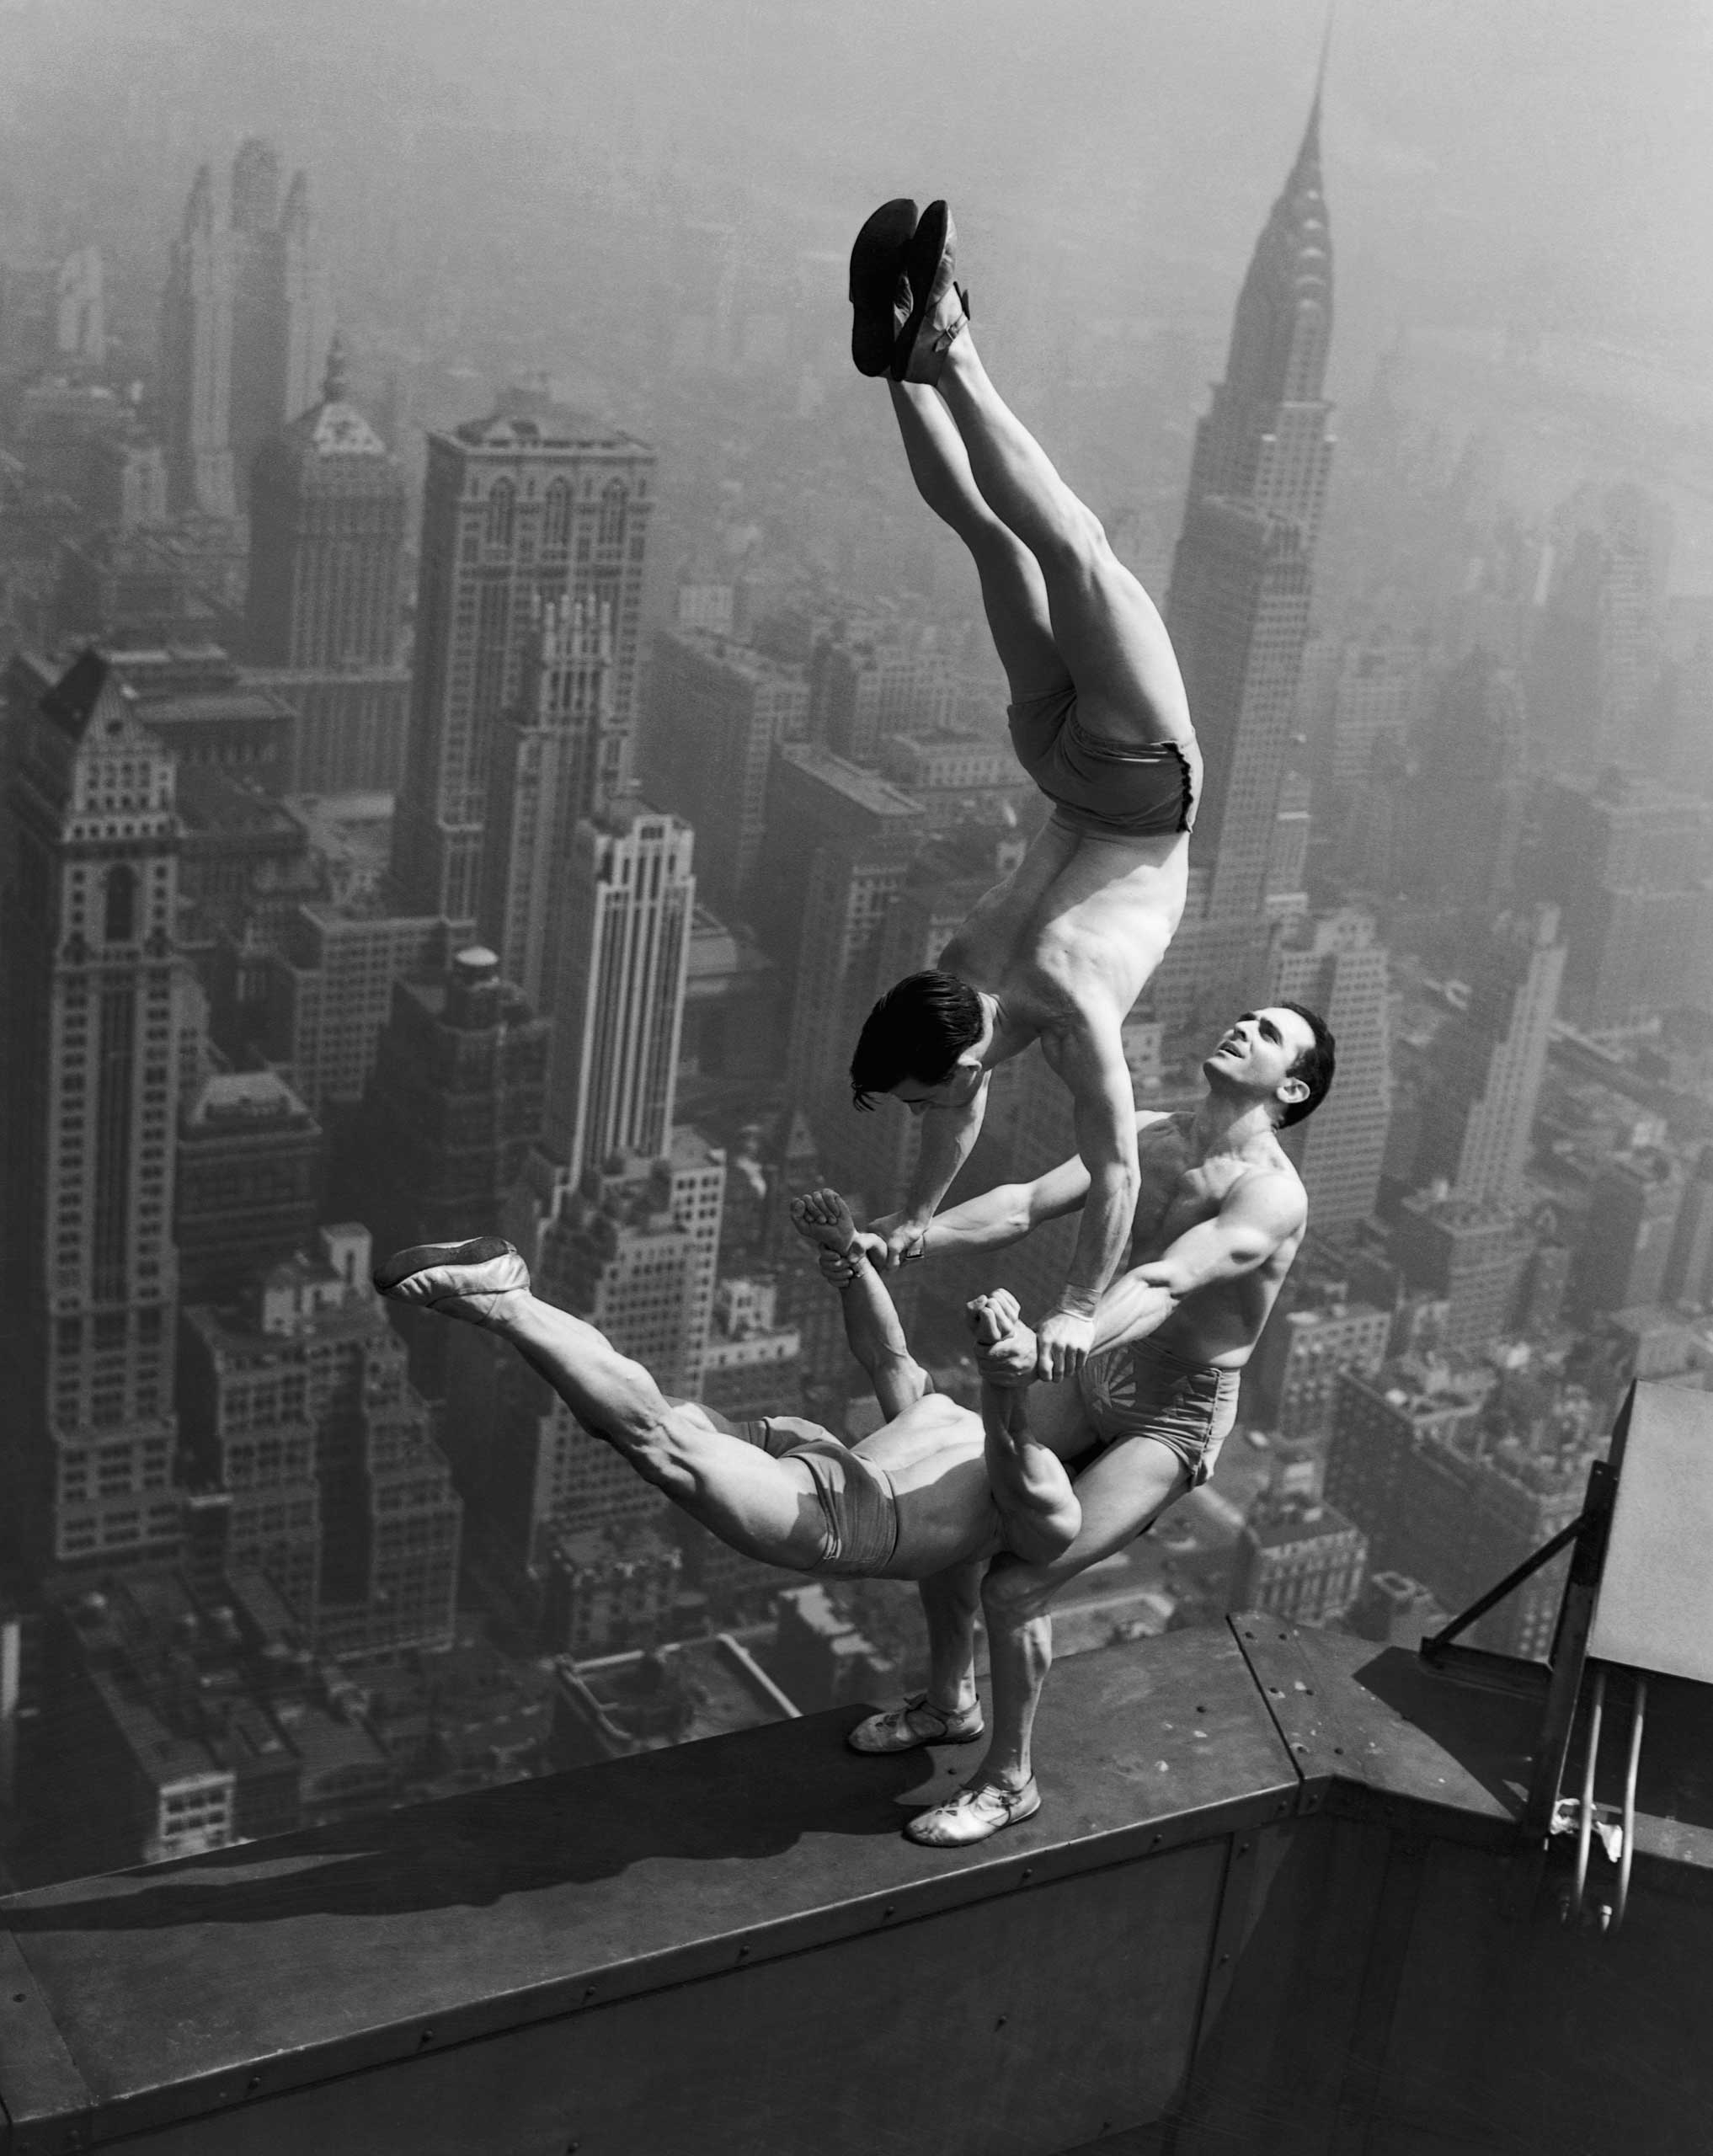 Acrobats Jarley Smith (top), Jewell Waddek (left), and Jimmy Kerrigan (right) perform a delicate balancing act on a ledge of the Empire State Building in Manhattan. Aug. 21, 1934,